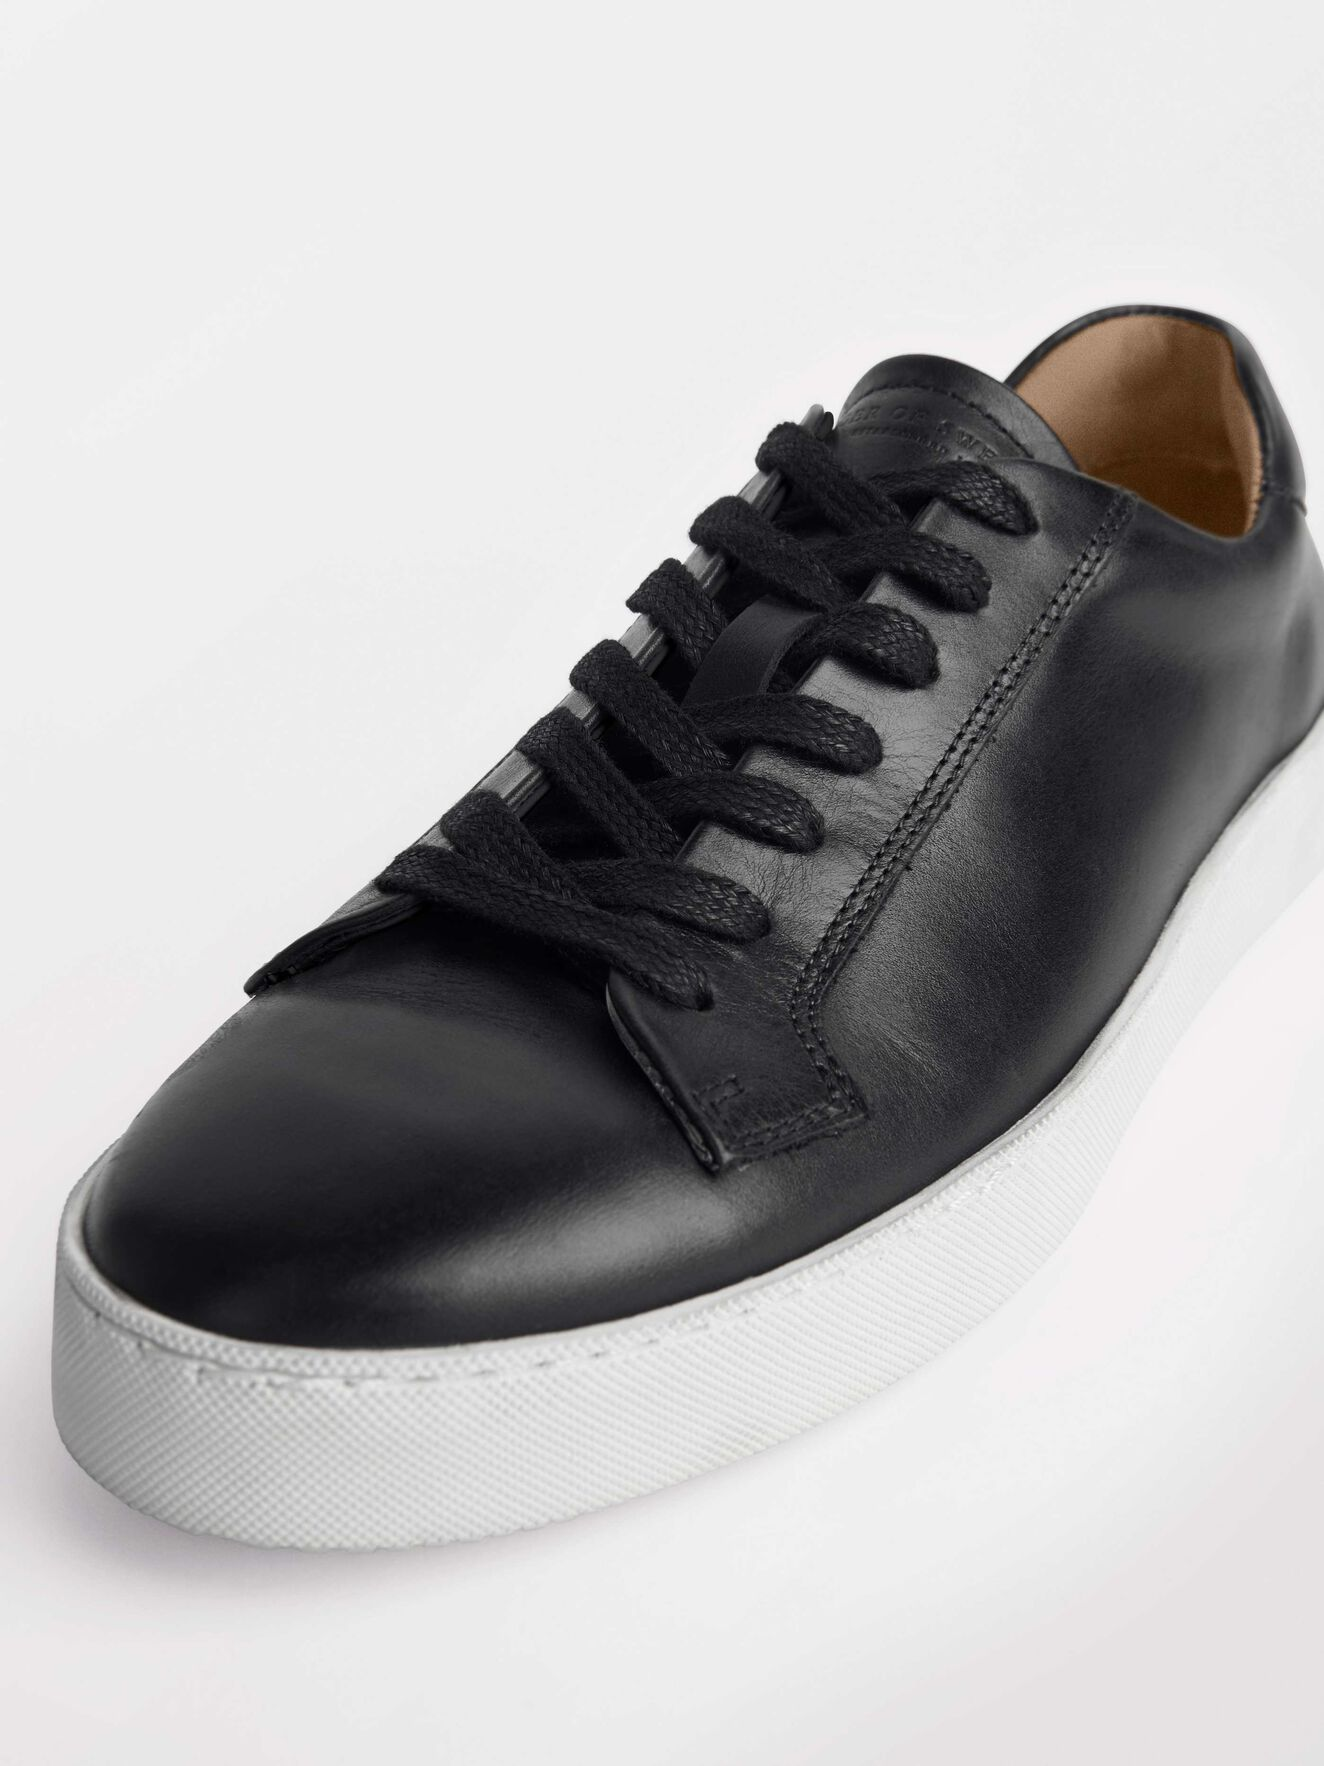 Salasi L Sneakers  in Black from Tiger of Sweden